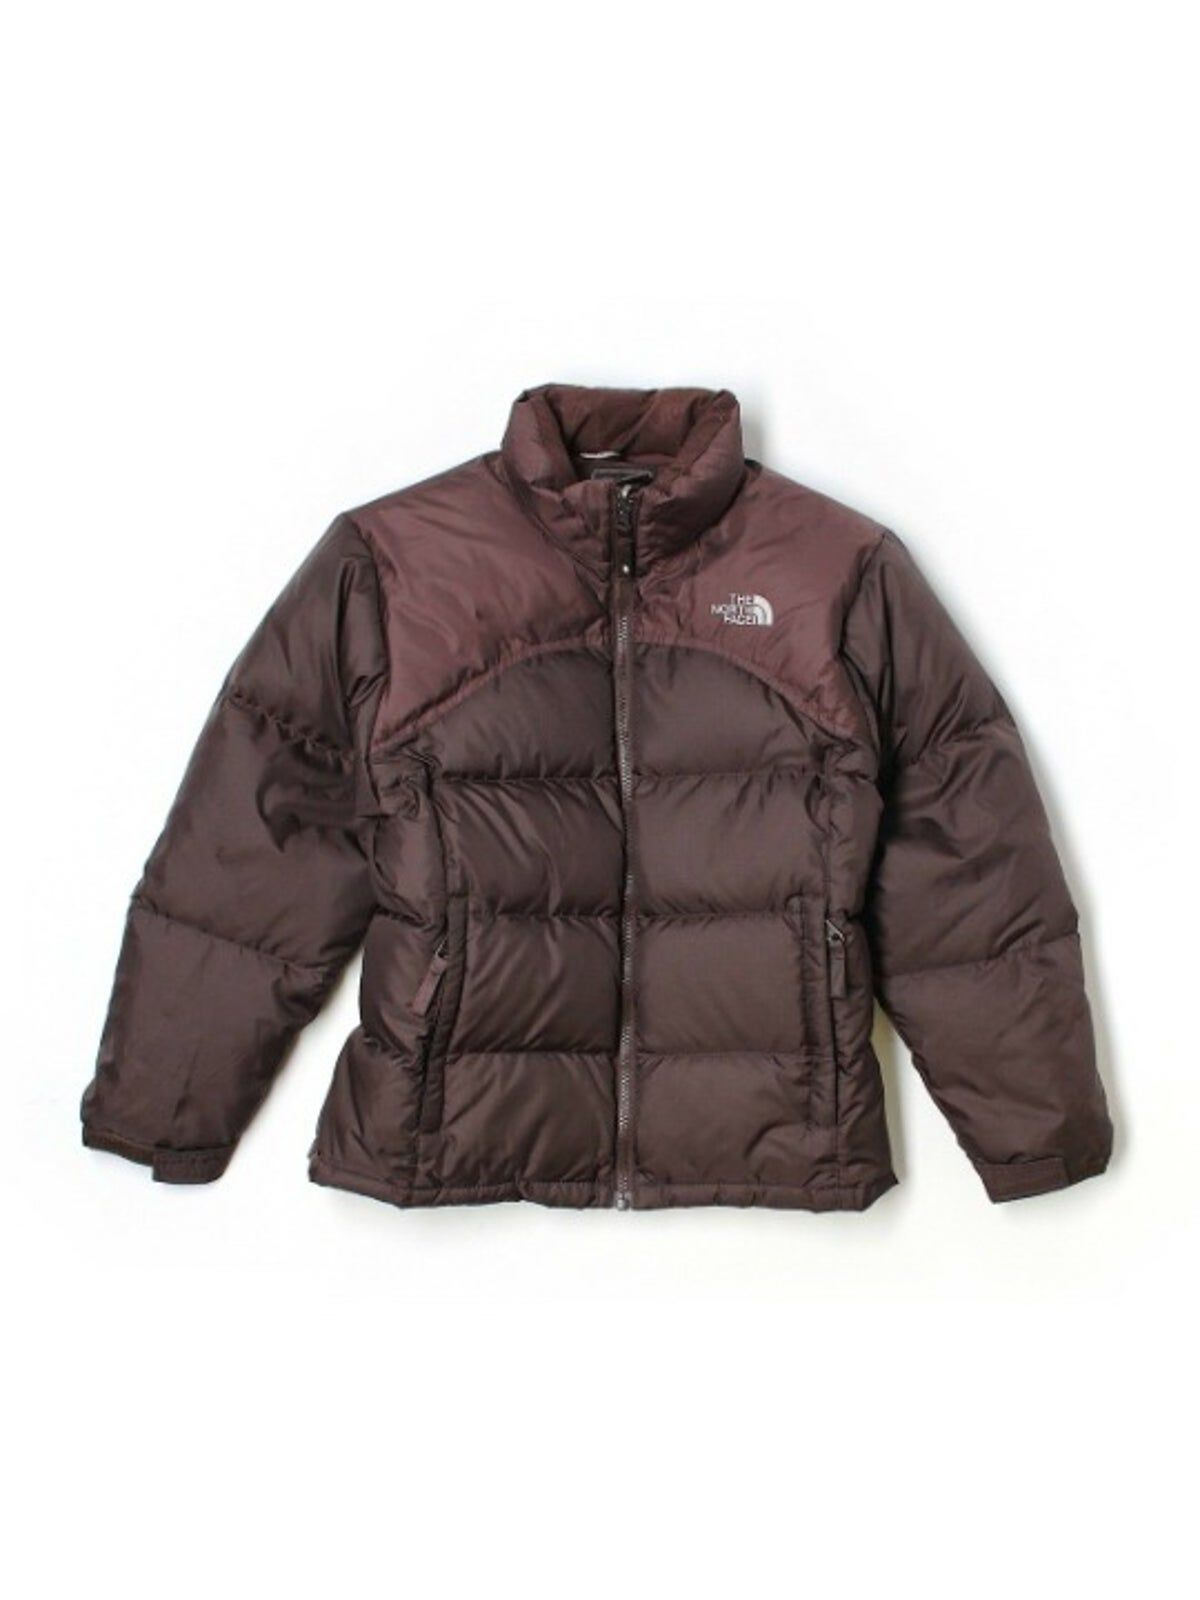 The North Face Girls Down Puffer Jacket Brown North Face Jacket Brown Puffer Jacket North Face Puffer Jacket [ 1600 x 1200 Pixel ]